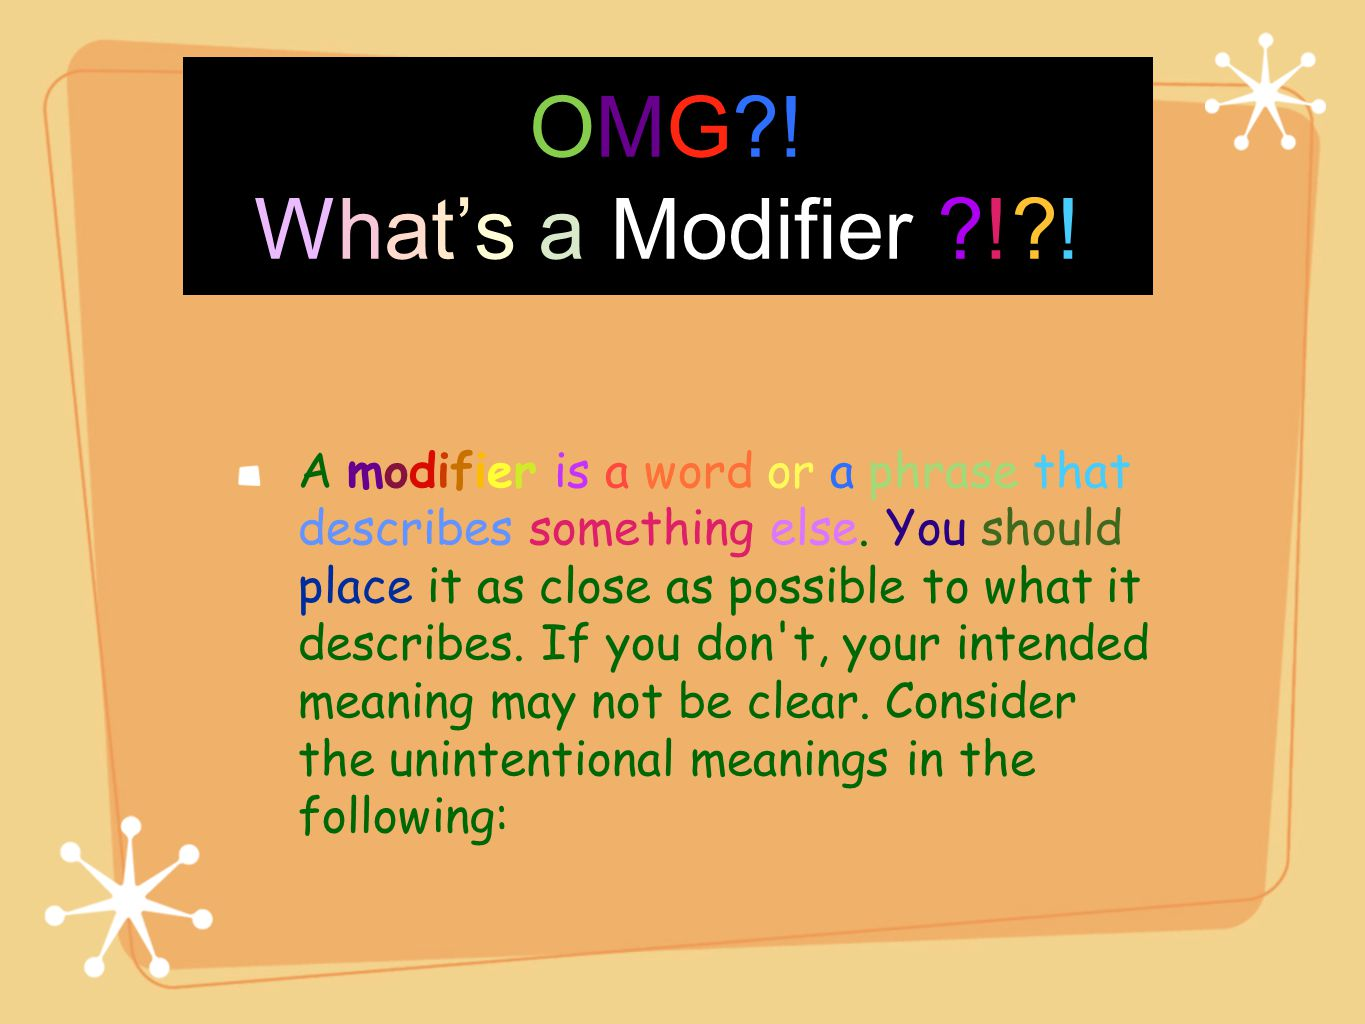 OMG?! What's a Modifier ?!?! A modifier is a word or a phrase that describes something else. You should place it as close as possible to what it descr